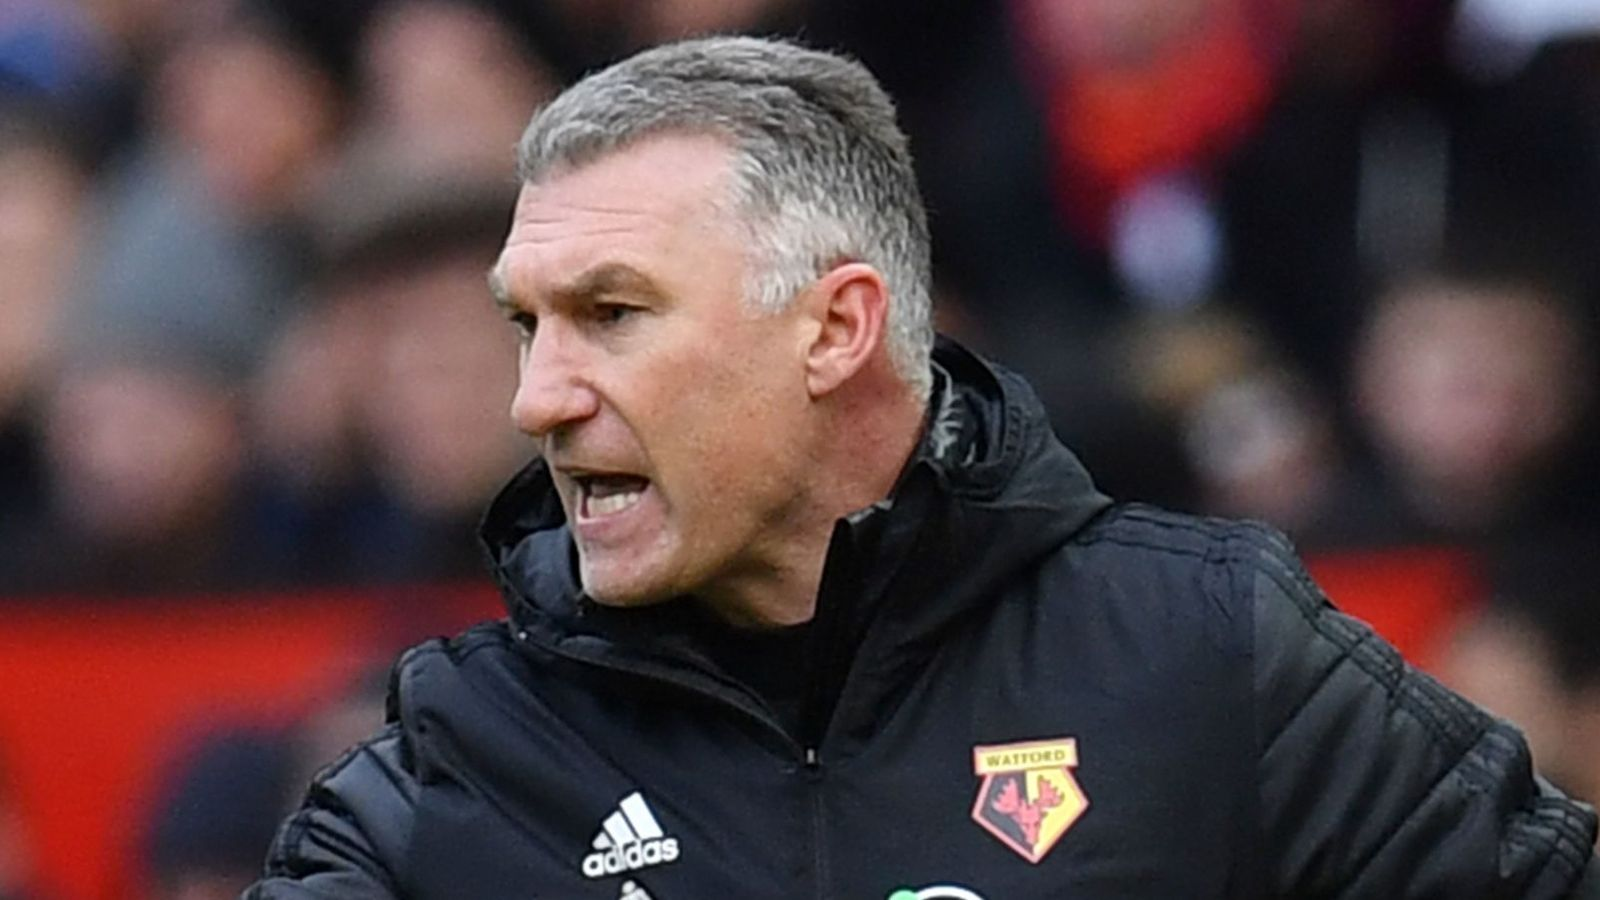 Watford boss Nigel Pearson: Liverpool game not a free hit